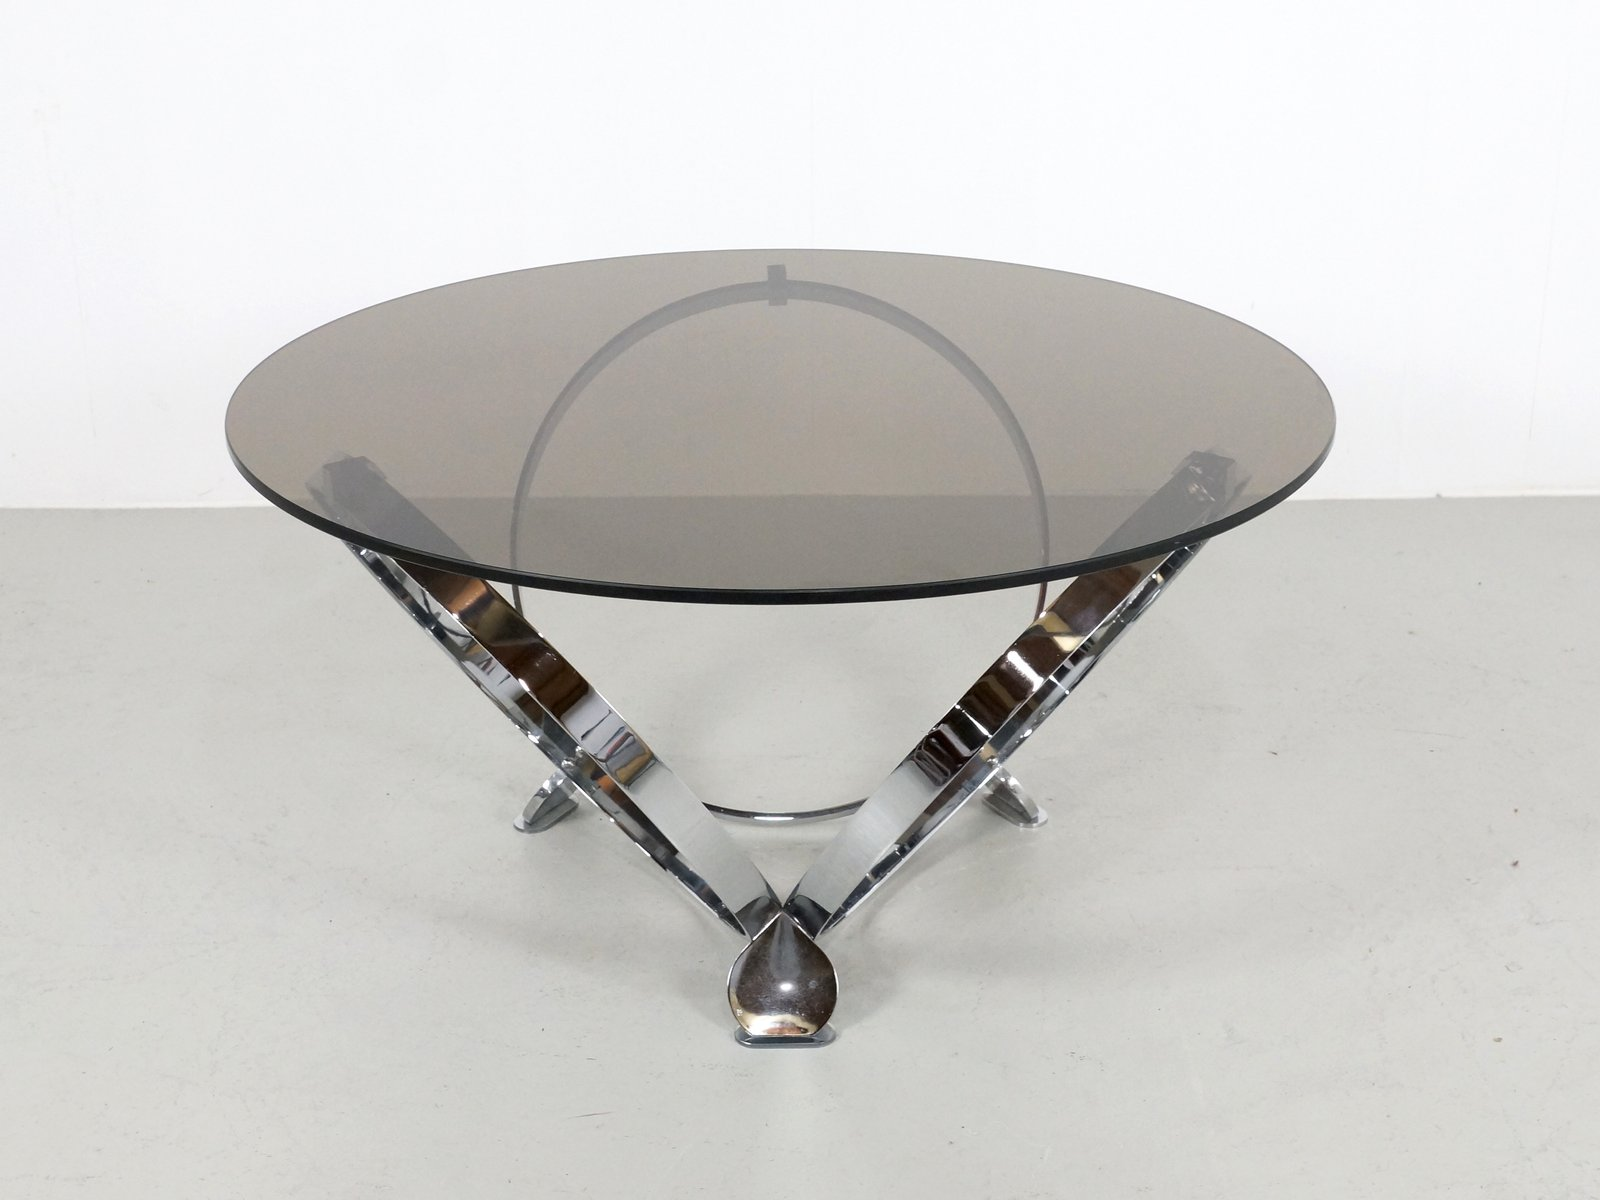 Chrome And Glass Round Coffee Table By Knut Hesterberg 1970s For Sale At Pamono